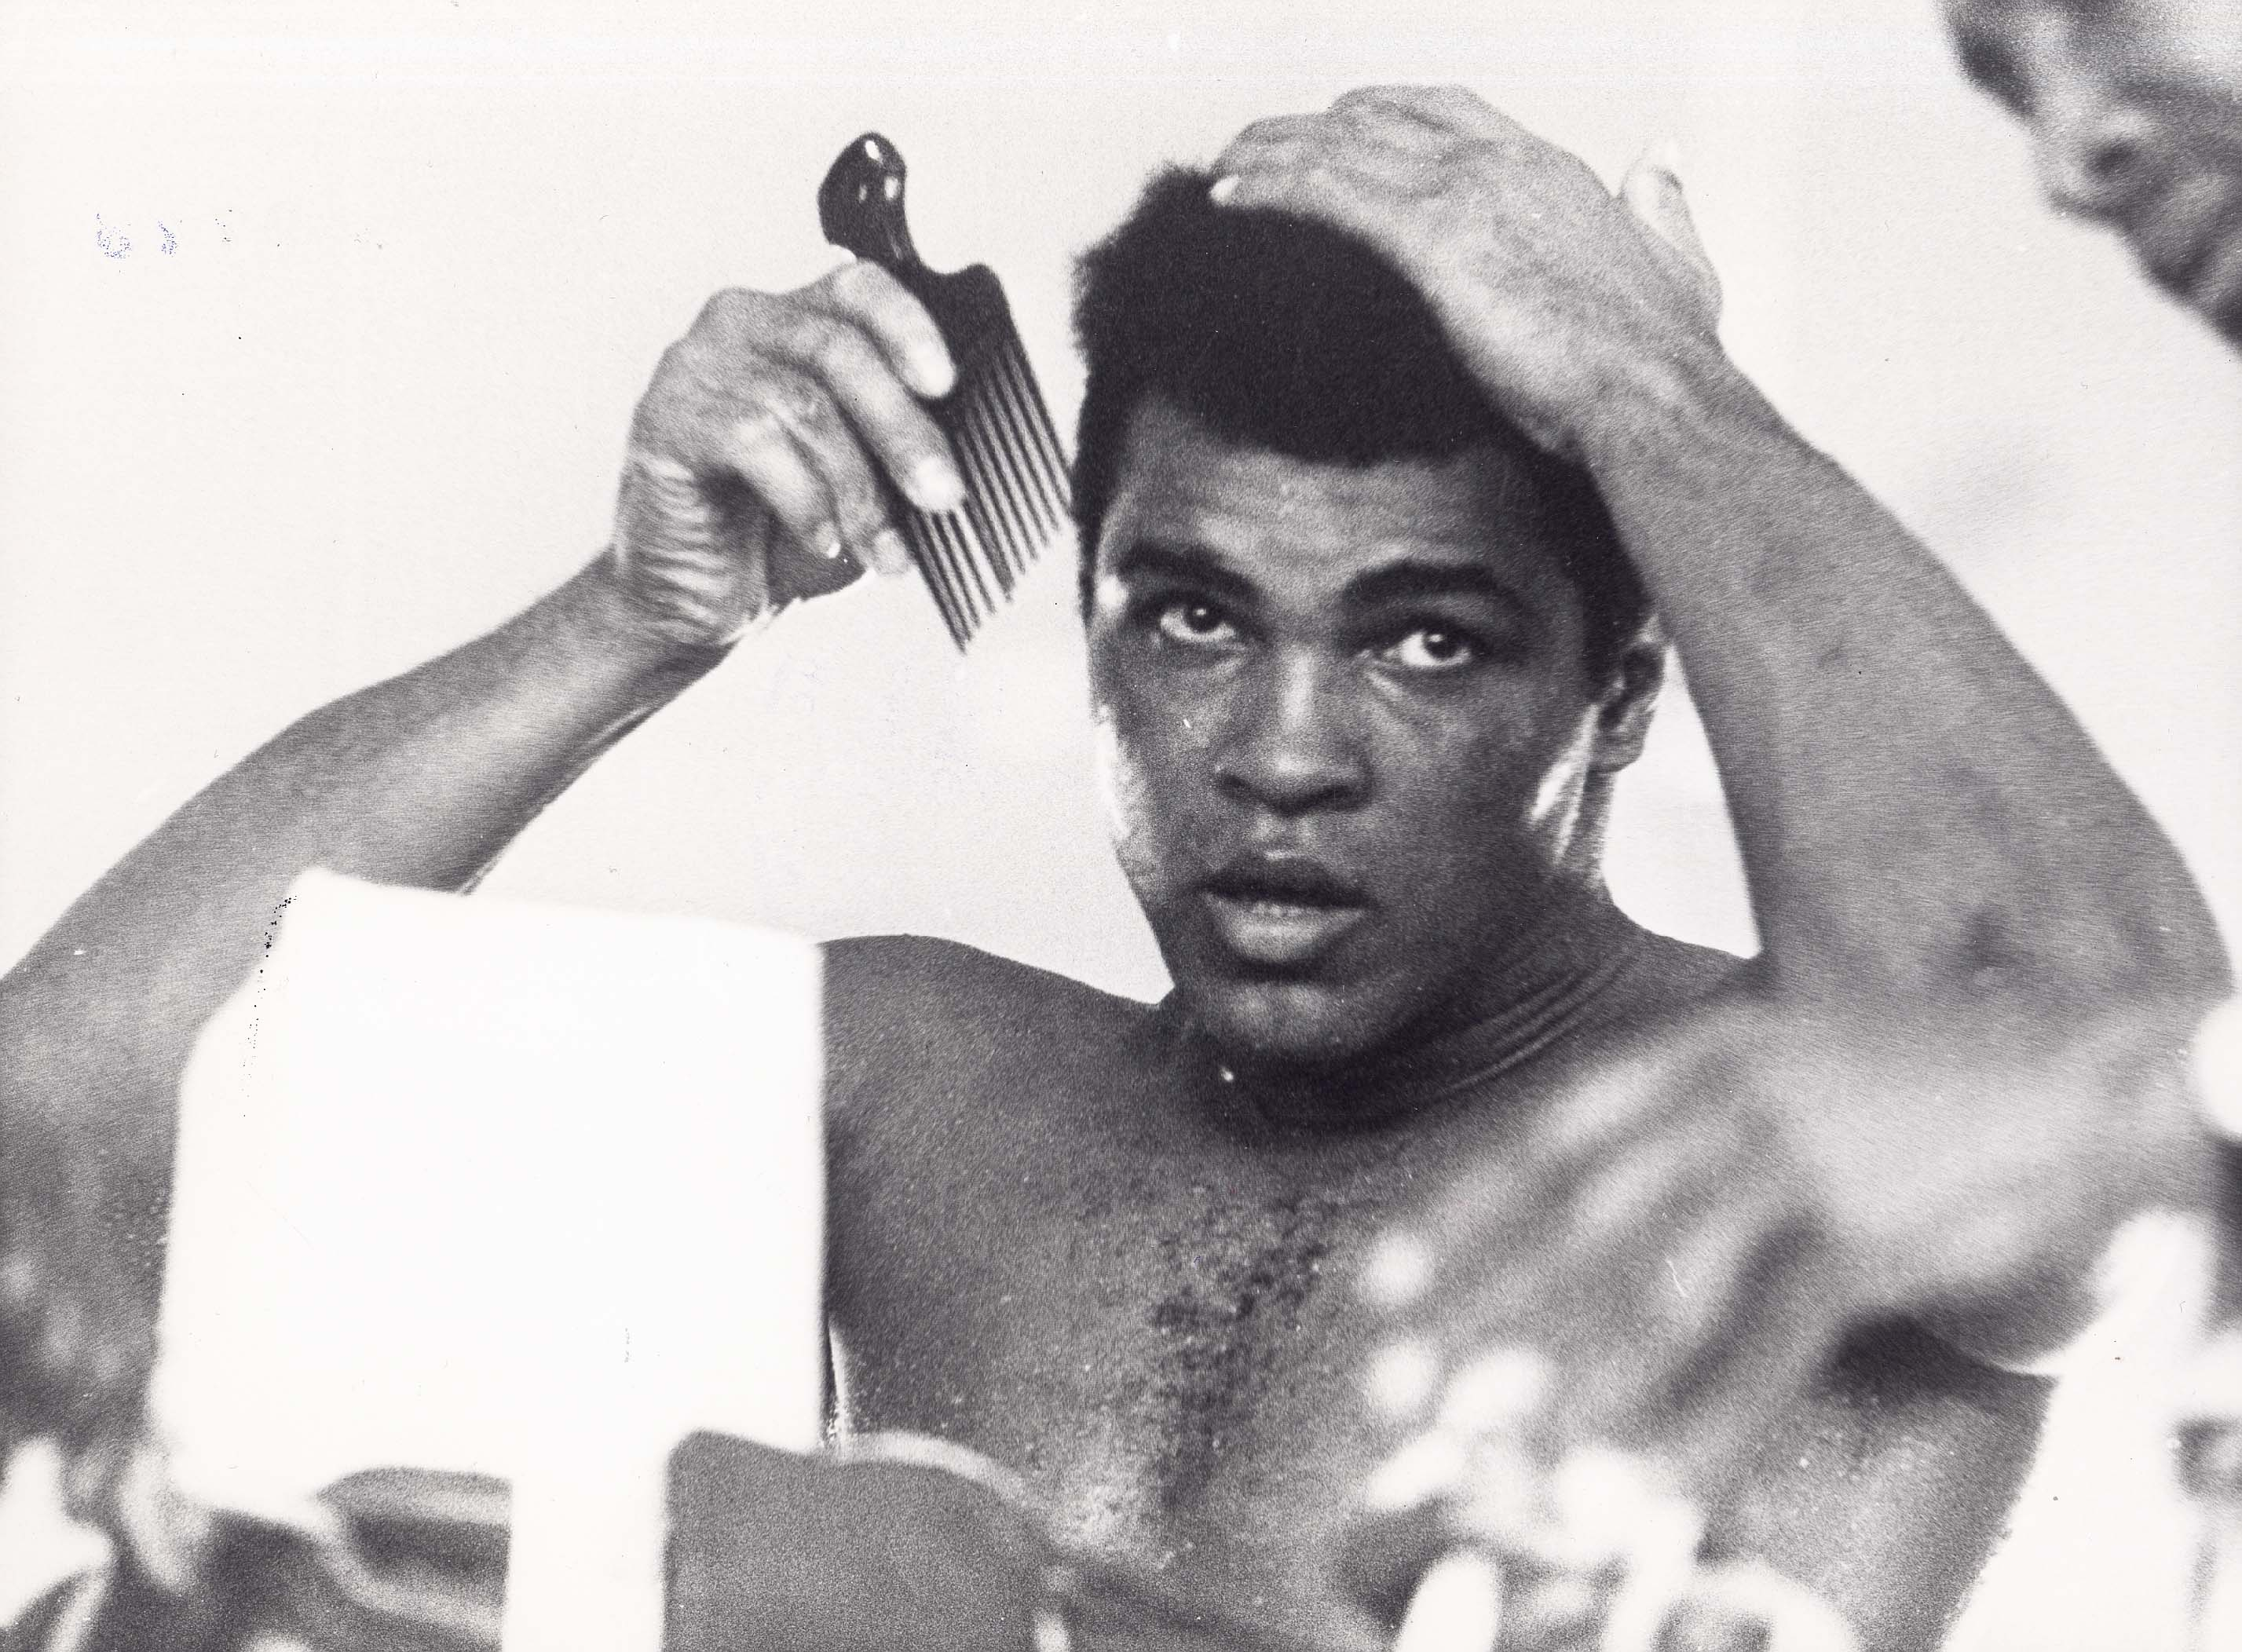 Dec. 9, 1974 - MUHAMMAD ALI in Zaire 1974.Supplied by Pressens Bild- - Photos, inc., Image: 109630520, License: Rights-managed, Restrictions: , Model Release: no, Credit line: Profimedia, Zuma Press - Archives